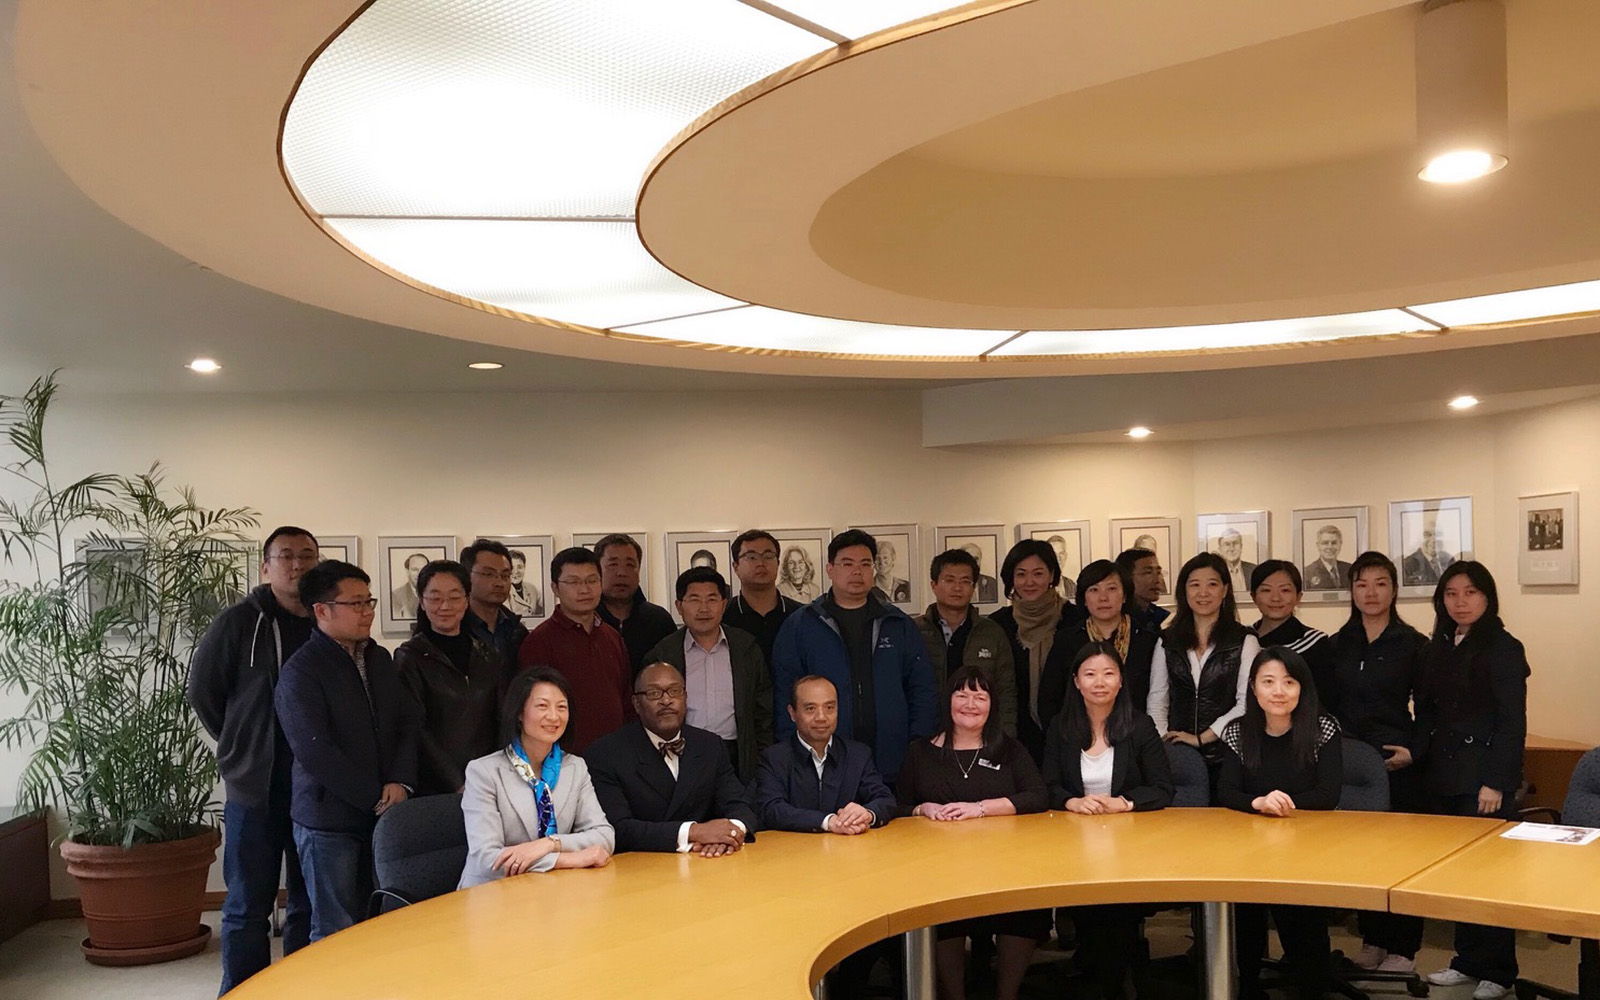 In late October, the Connecticut Small Business Development Center (CTSBDC) and the UConn School of Business addressed a business delegation from China. (Emily Carter/Connecticut Small Business Development Center)